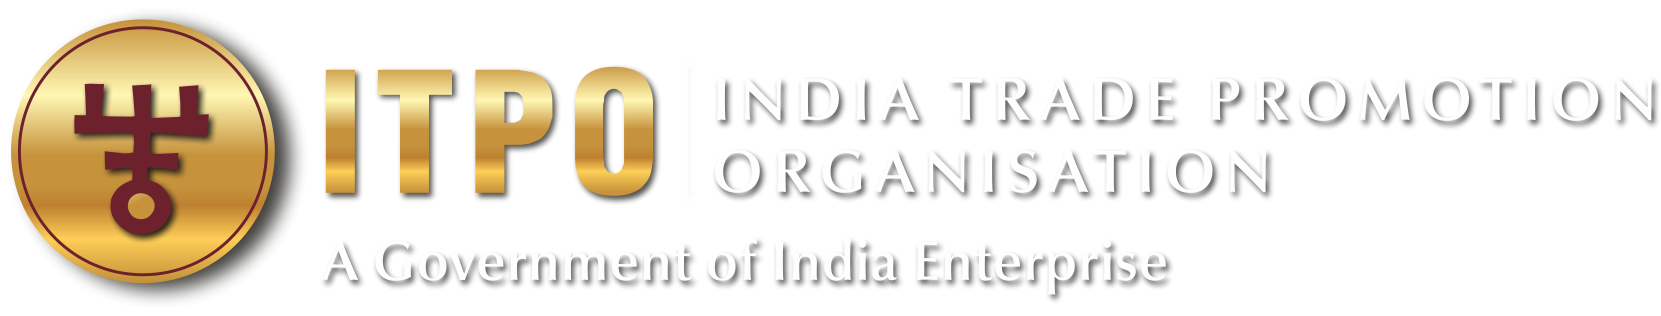 India Trade Promotion Organisation